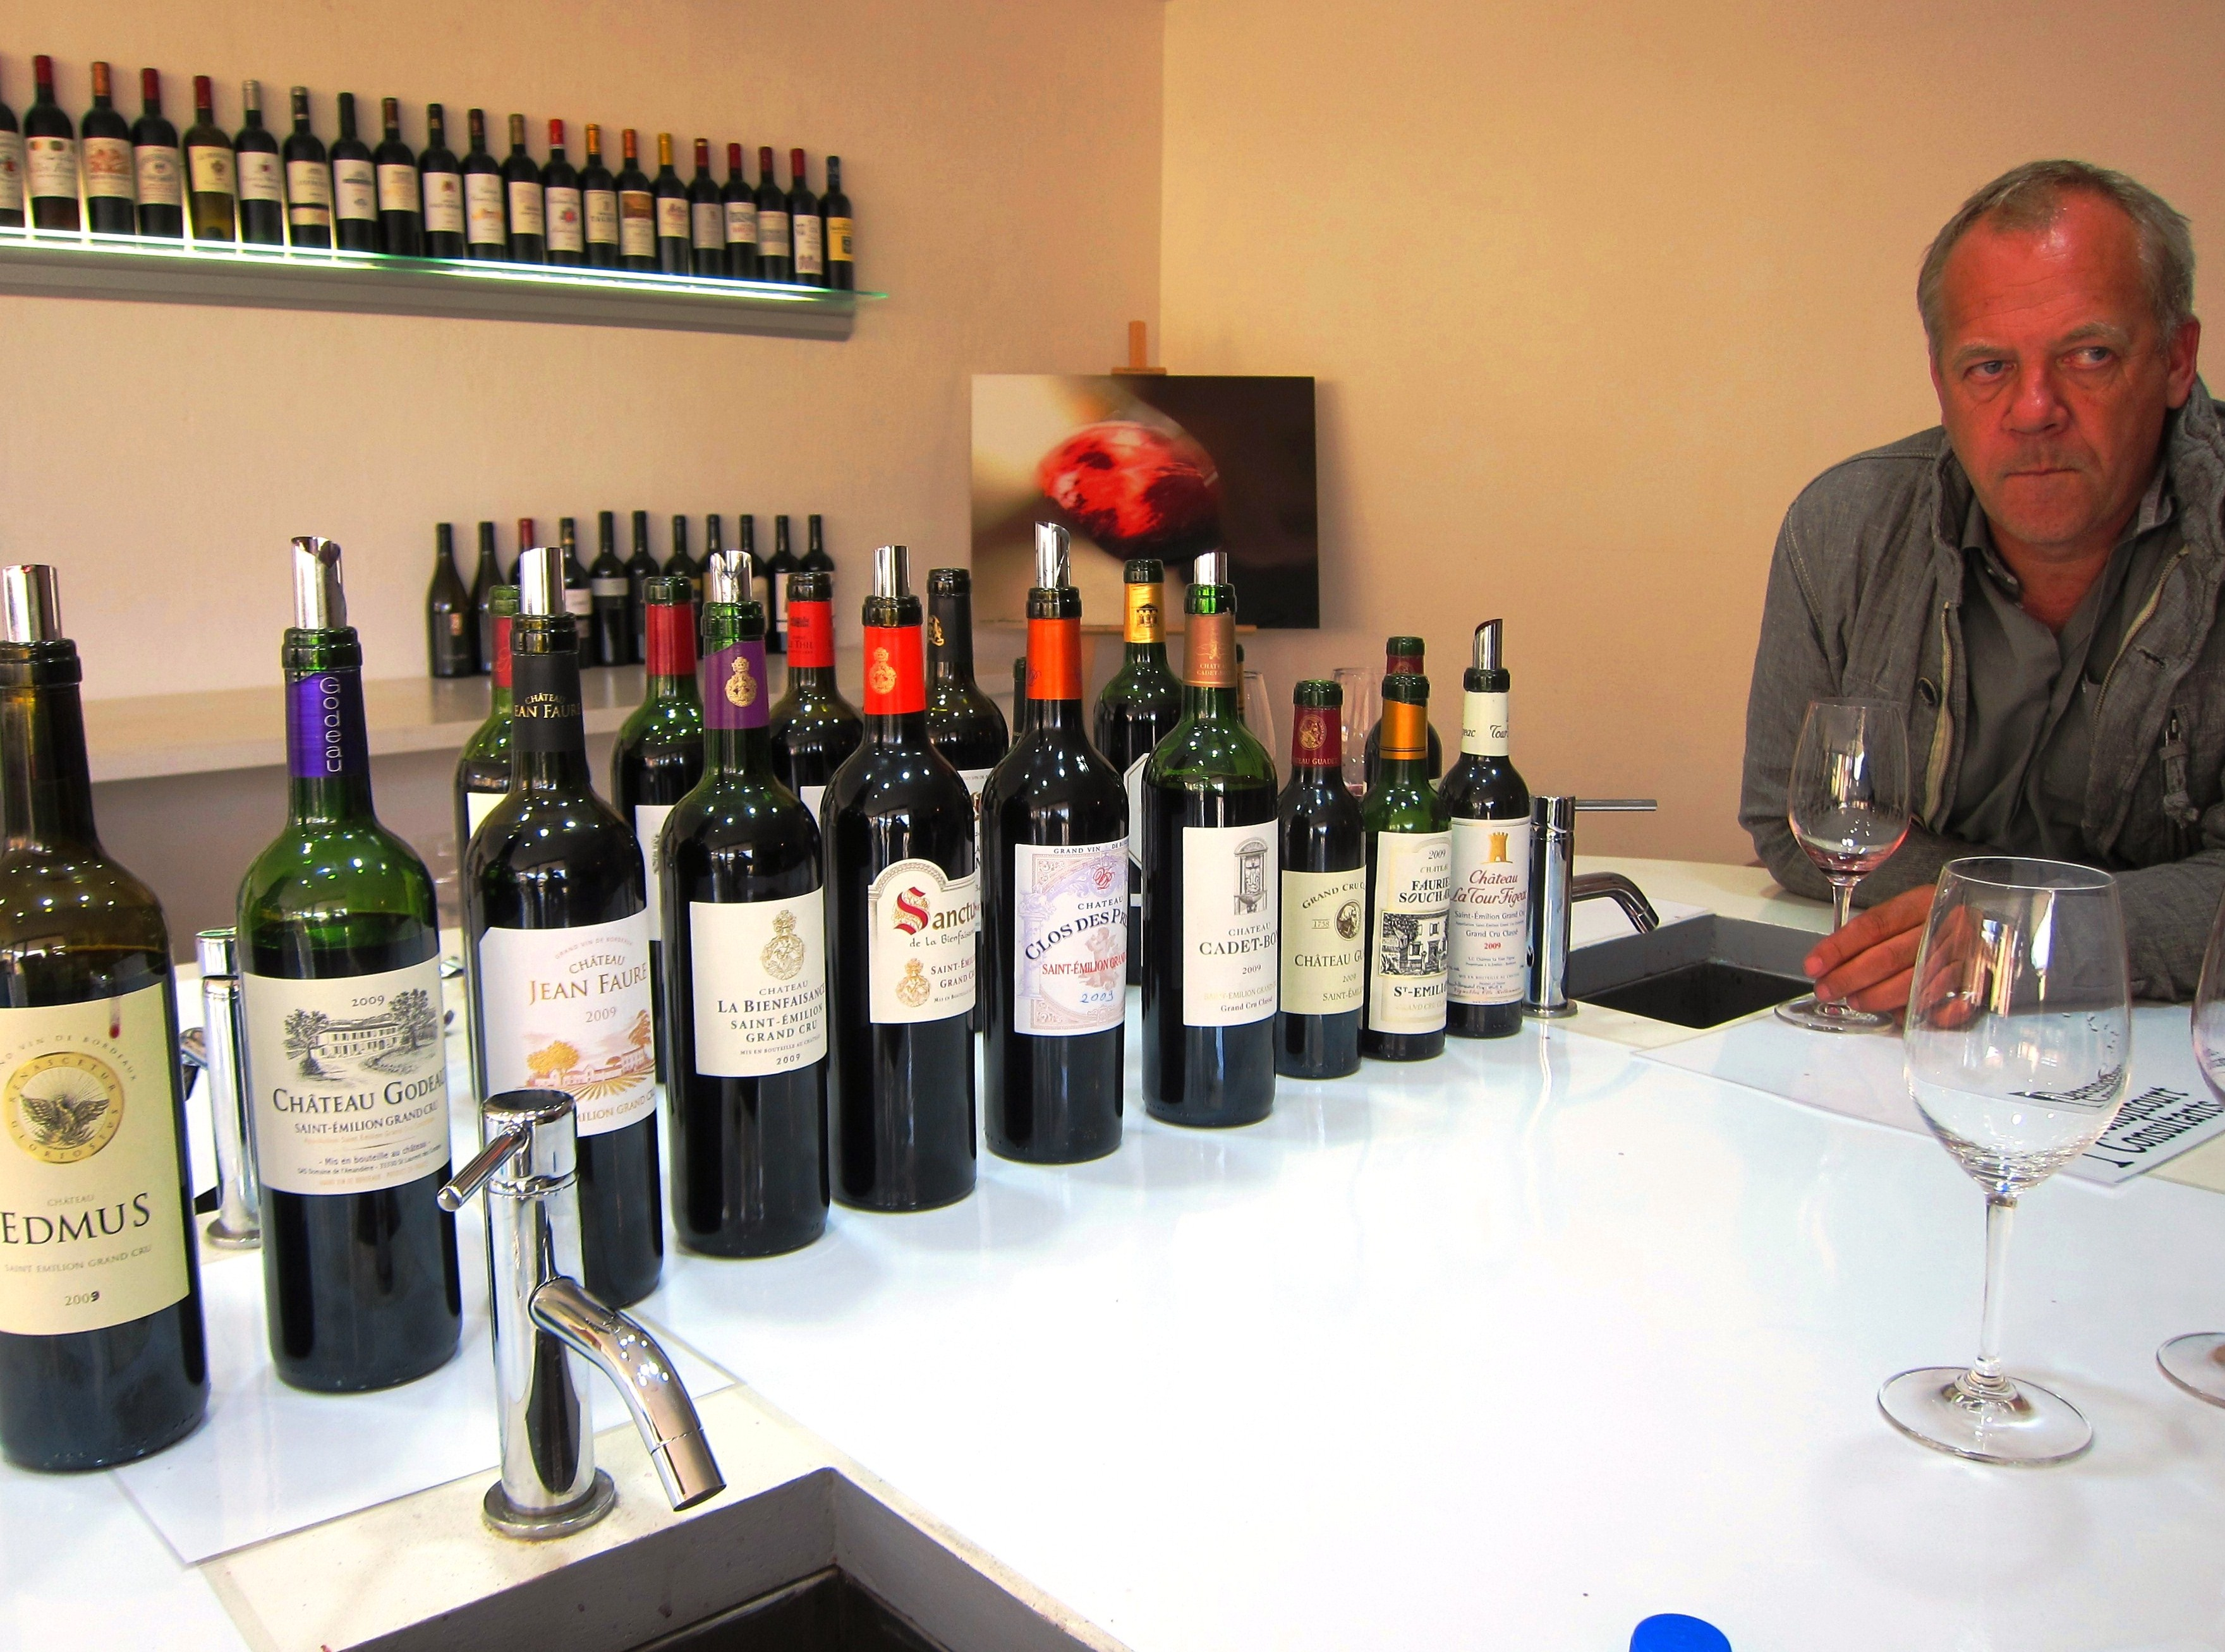 Bordeaux wine tasting with Stephane Derenoncourt